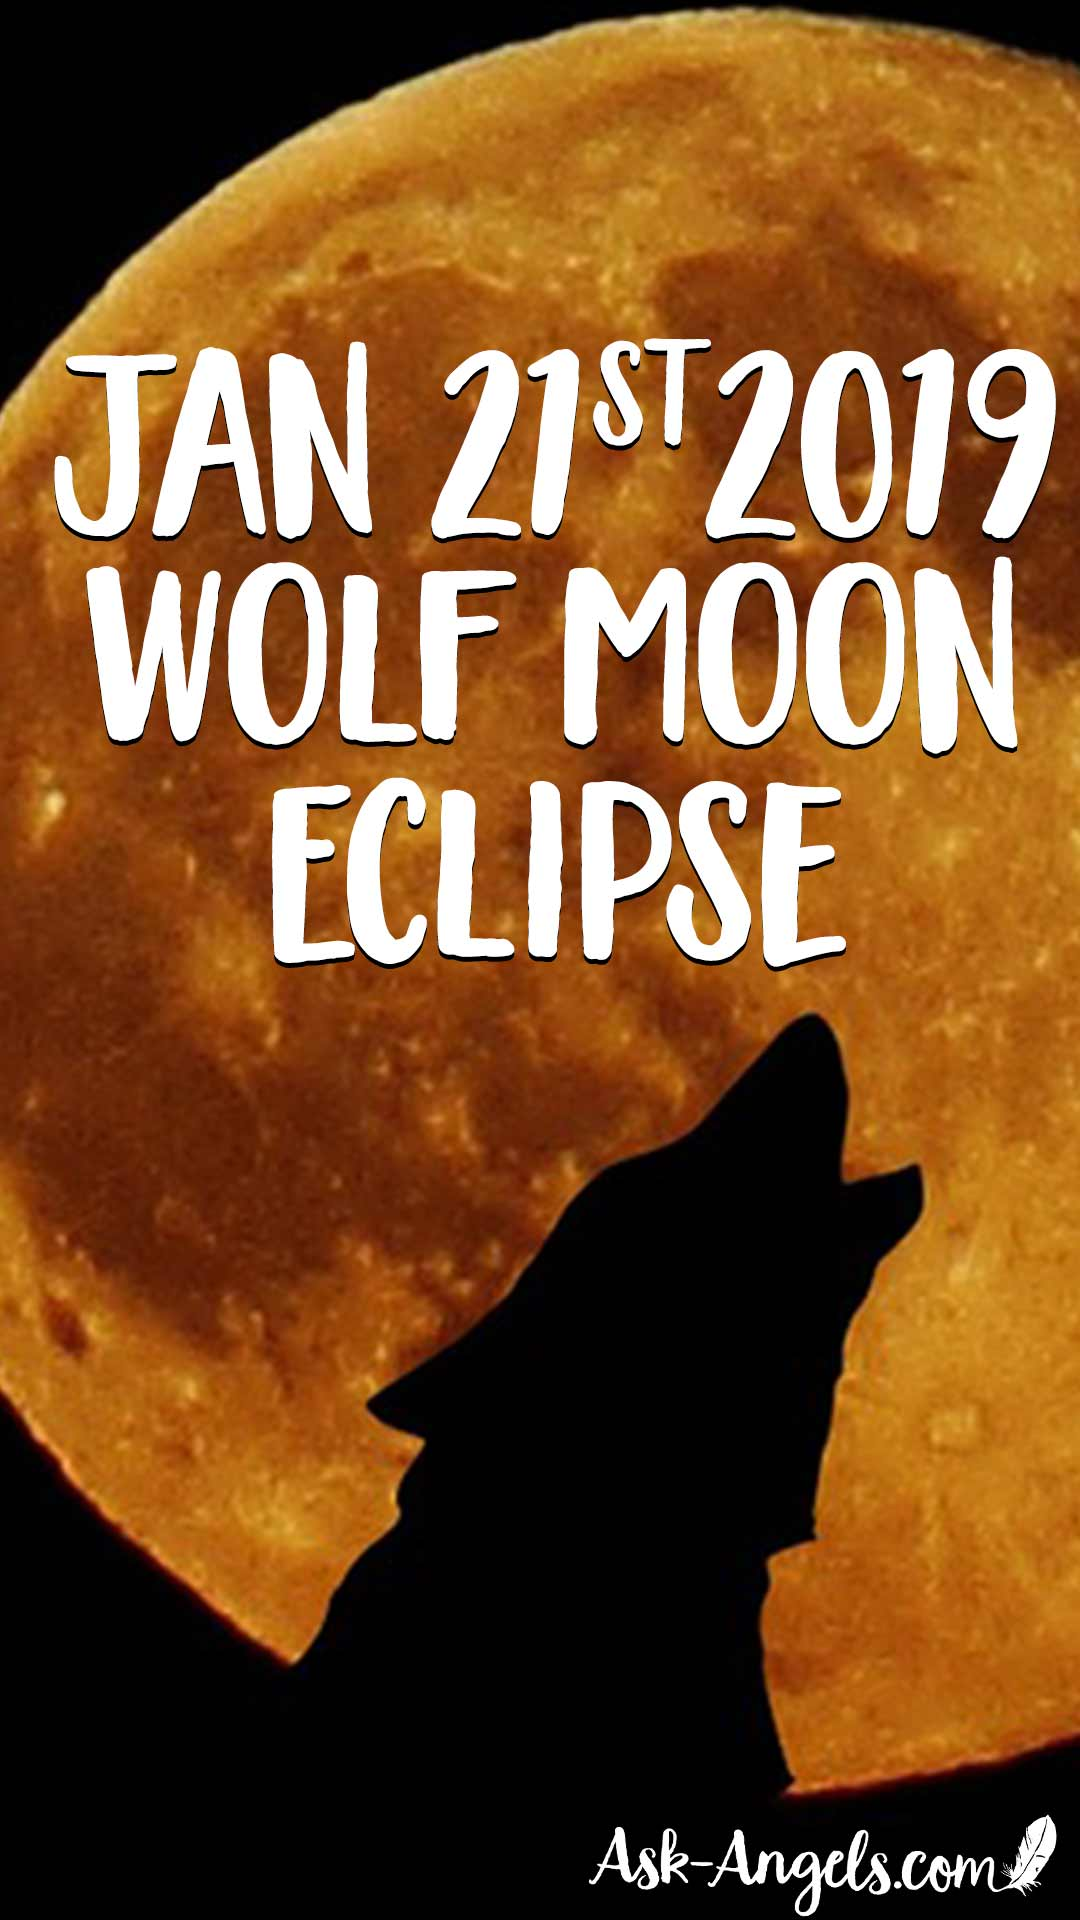 21 janv.2019 Full Wolf Moon Eclipse